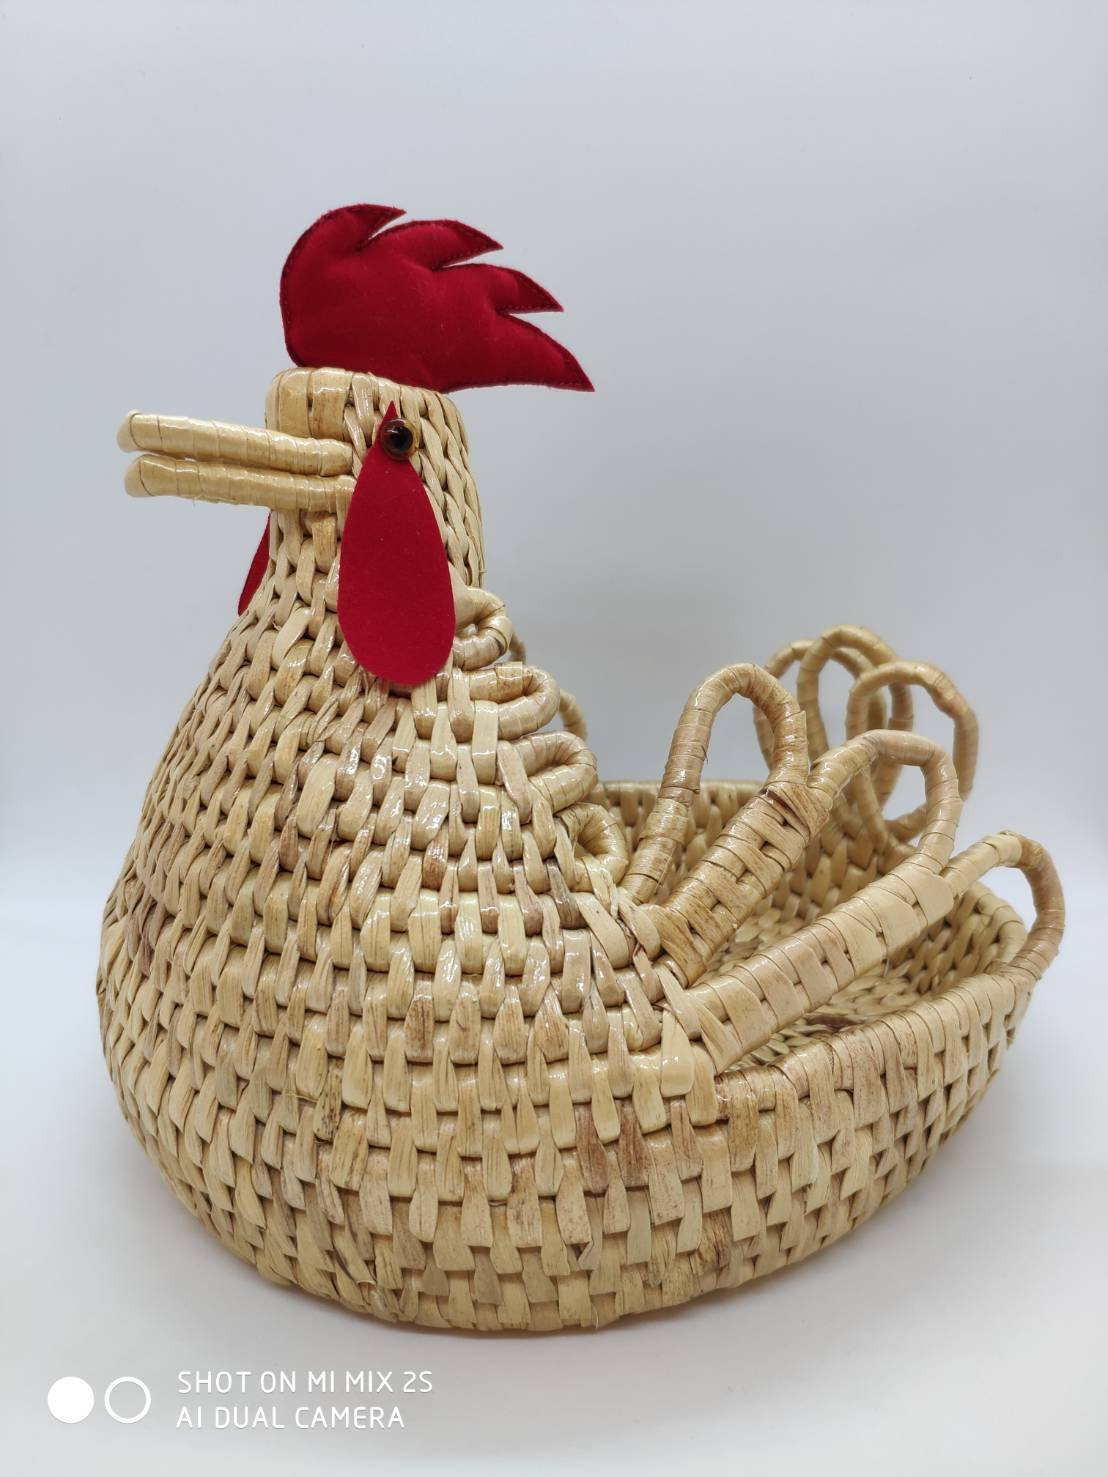 COZY LADYCRAFT Chicken Rattan Bread Fruit Basket Storage Box Home Living Room Coffee Table Fruit Plate Decoration Crafts Imitation Rattan Basket